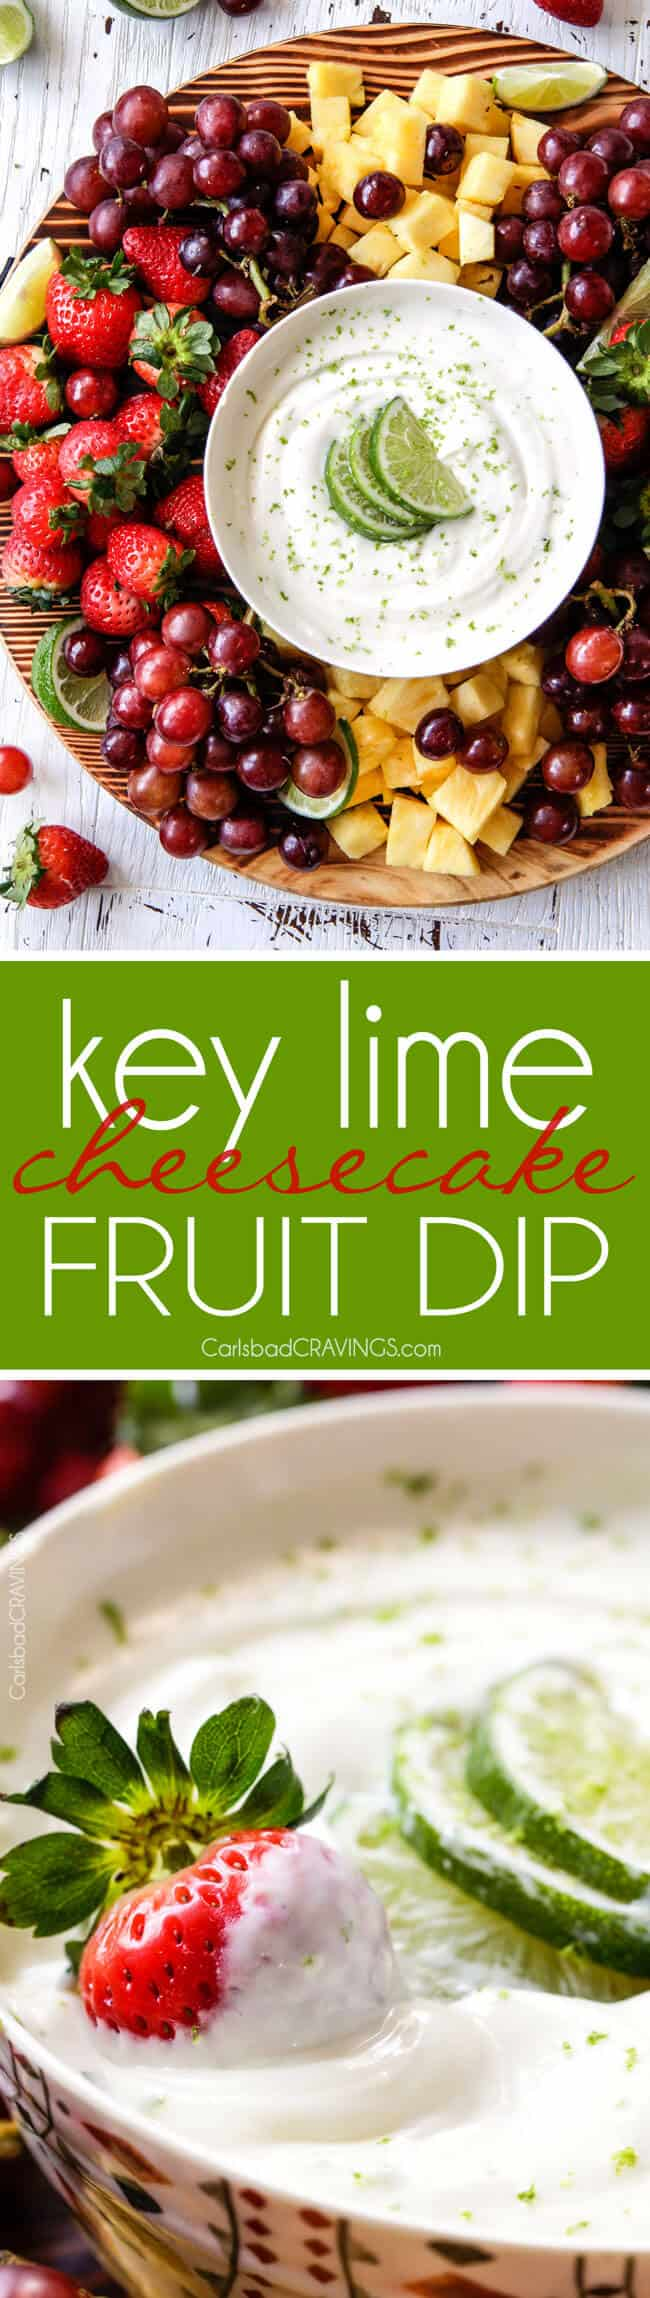 Key Lime Cheesecake Fruit Dip is smooth, creamy and the BEST way to eat fruit! Addictingly delicious make ahead snack or appetizer!